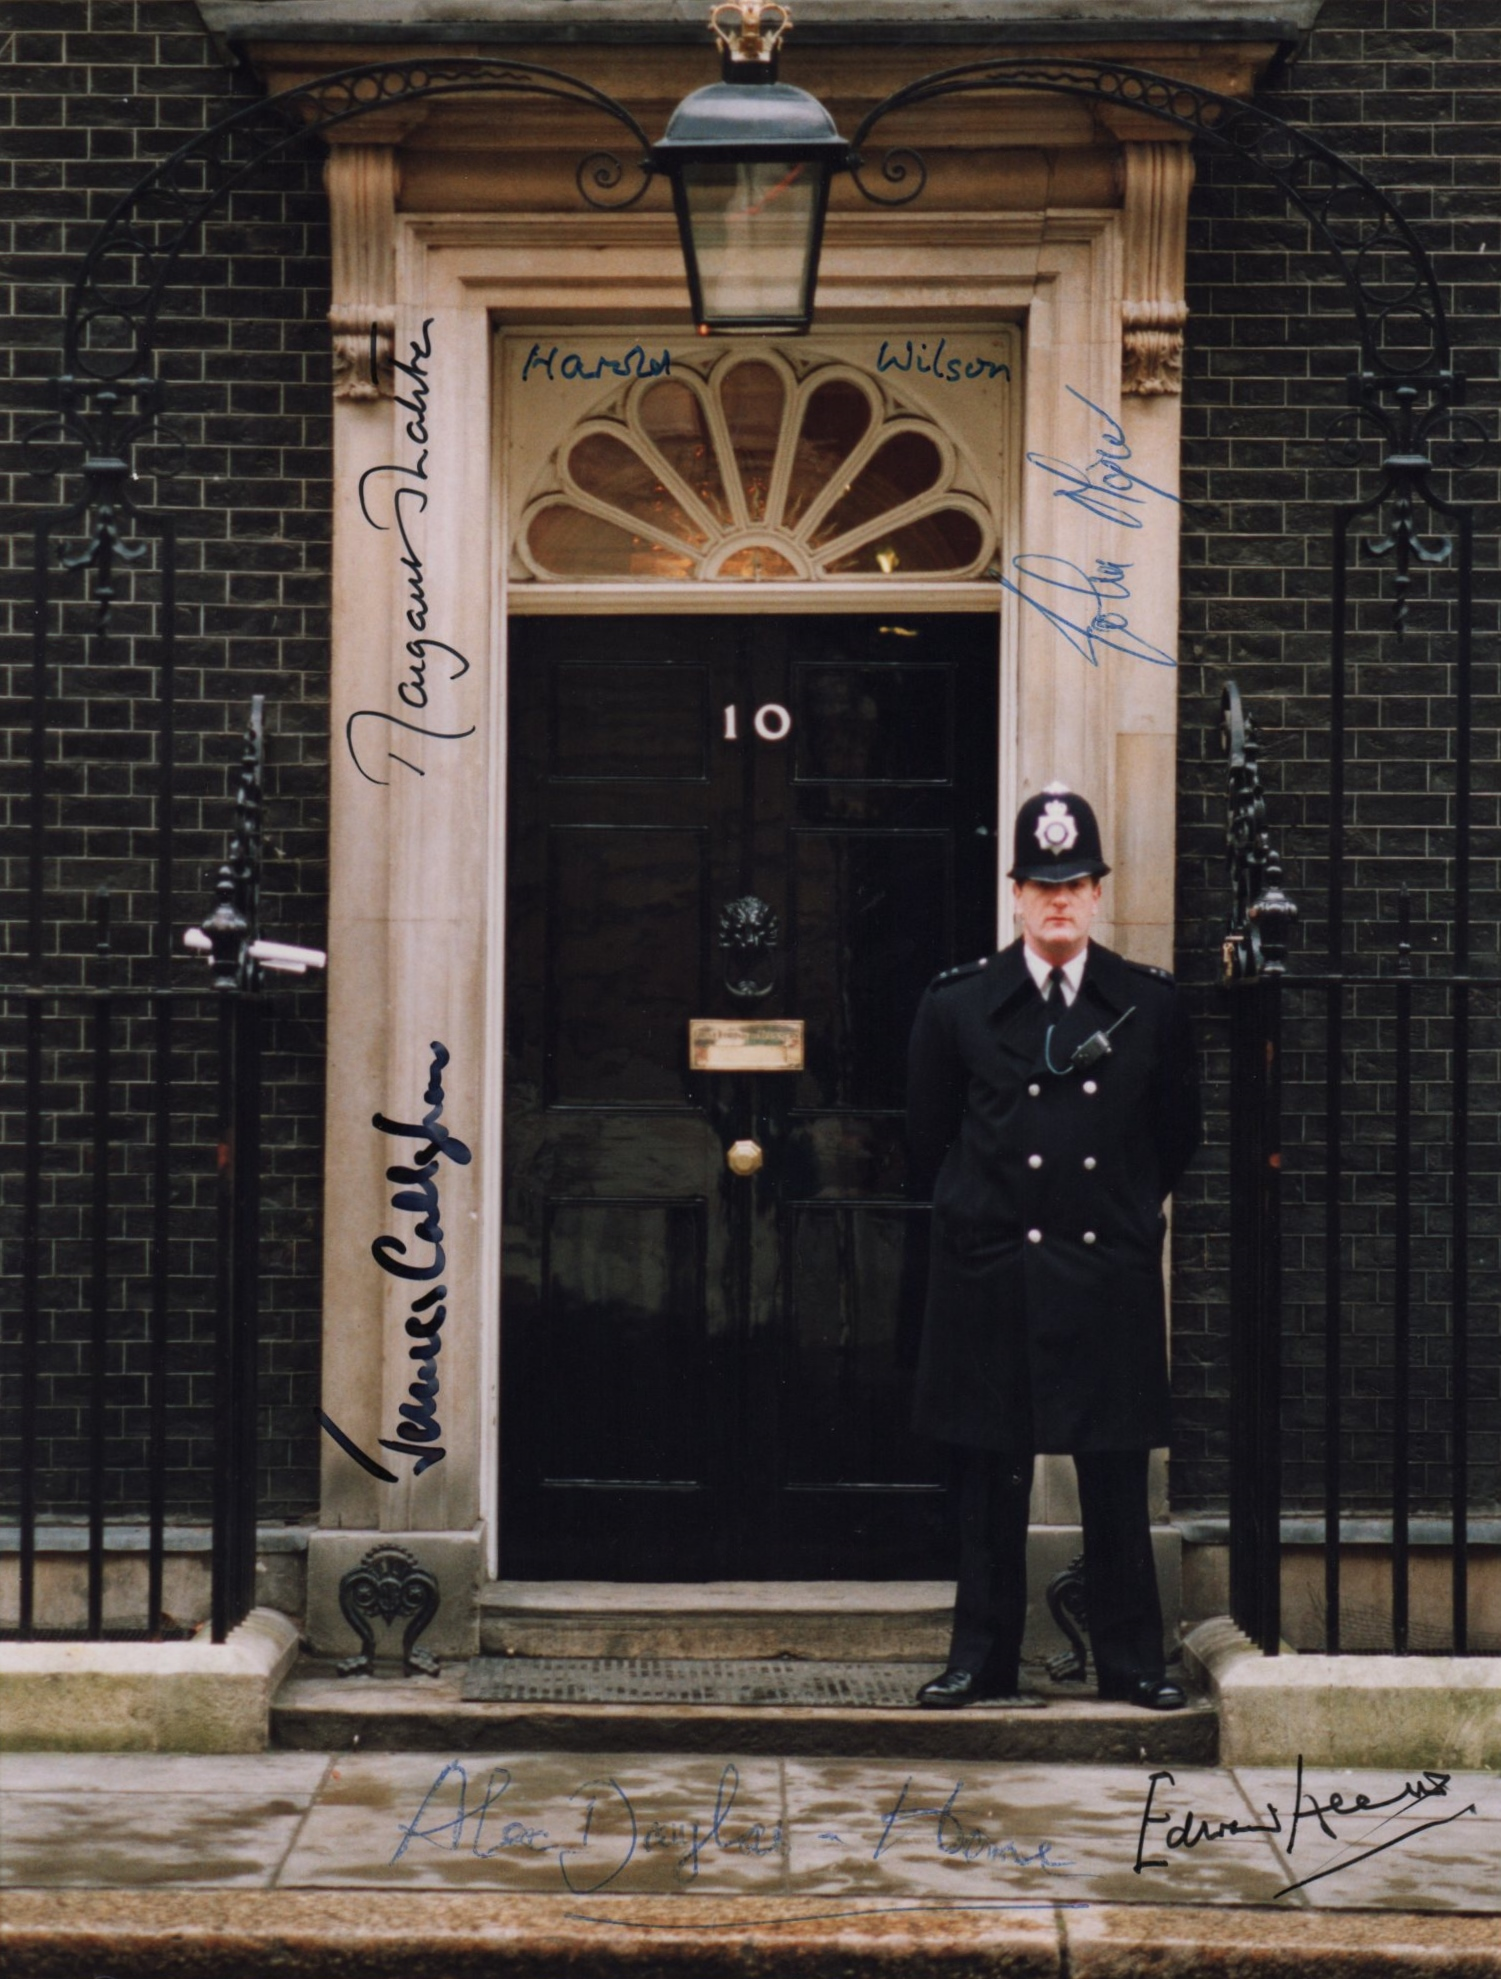 Lot 246 - BRITISH PRIME MINISTERS: An excellent colour 8 x 10 photograph of the entrance to 10 Downing Street